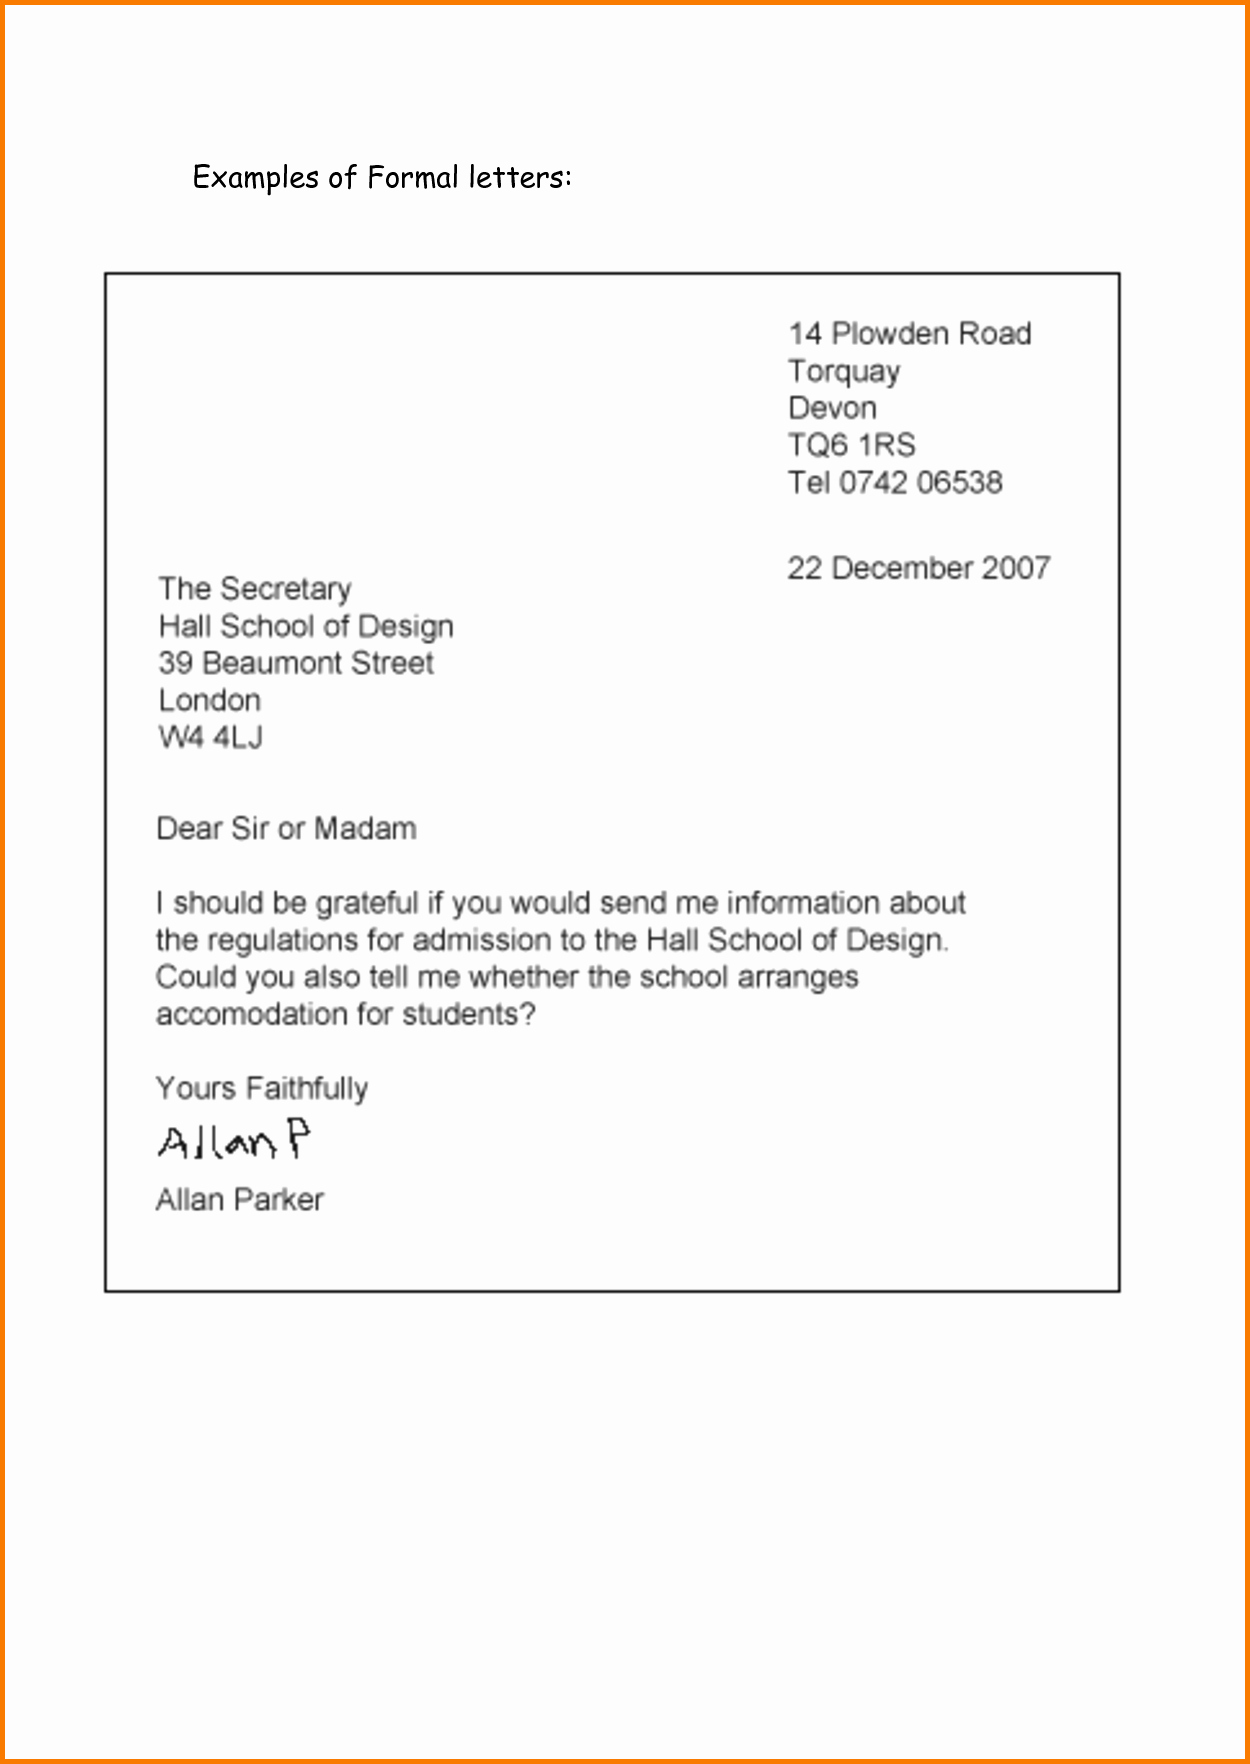 Sample Of formal Business Letter Lovely 6 formal Business Letter Samples